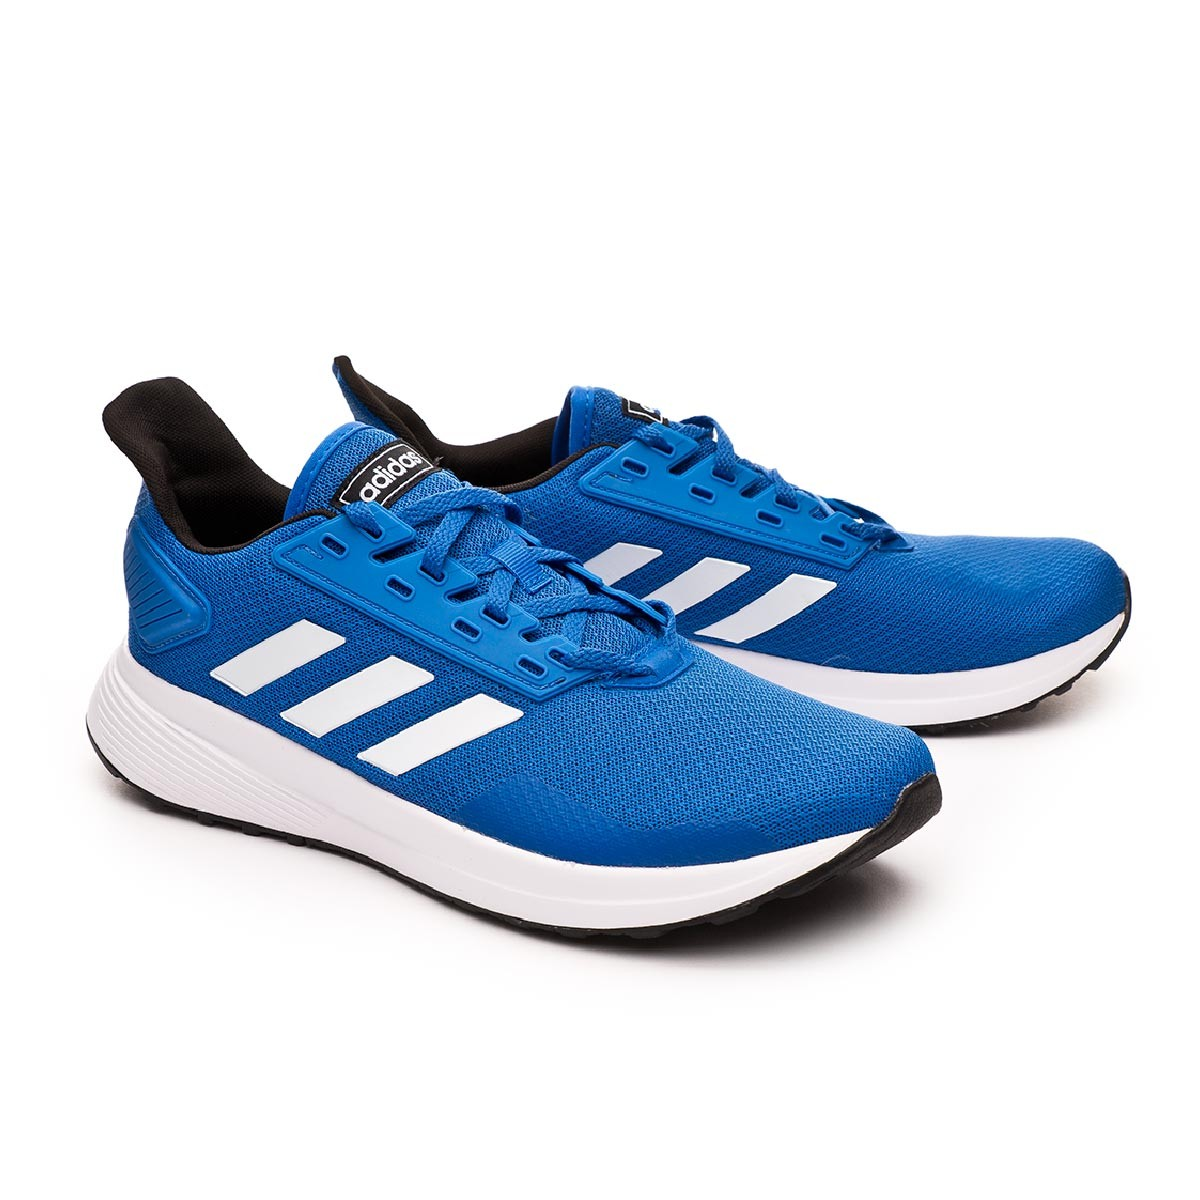 Ejecutante liebre Condimento  Trainers adidas Duramo 9 Blue-White-Core black - Football store Fútbol  Emotion